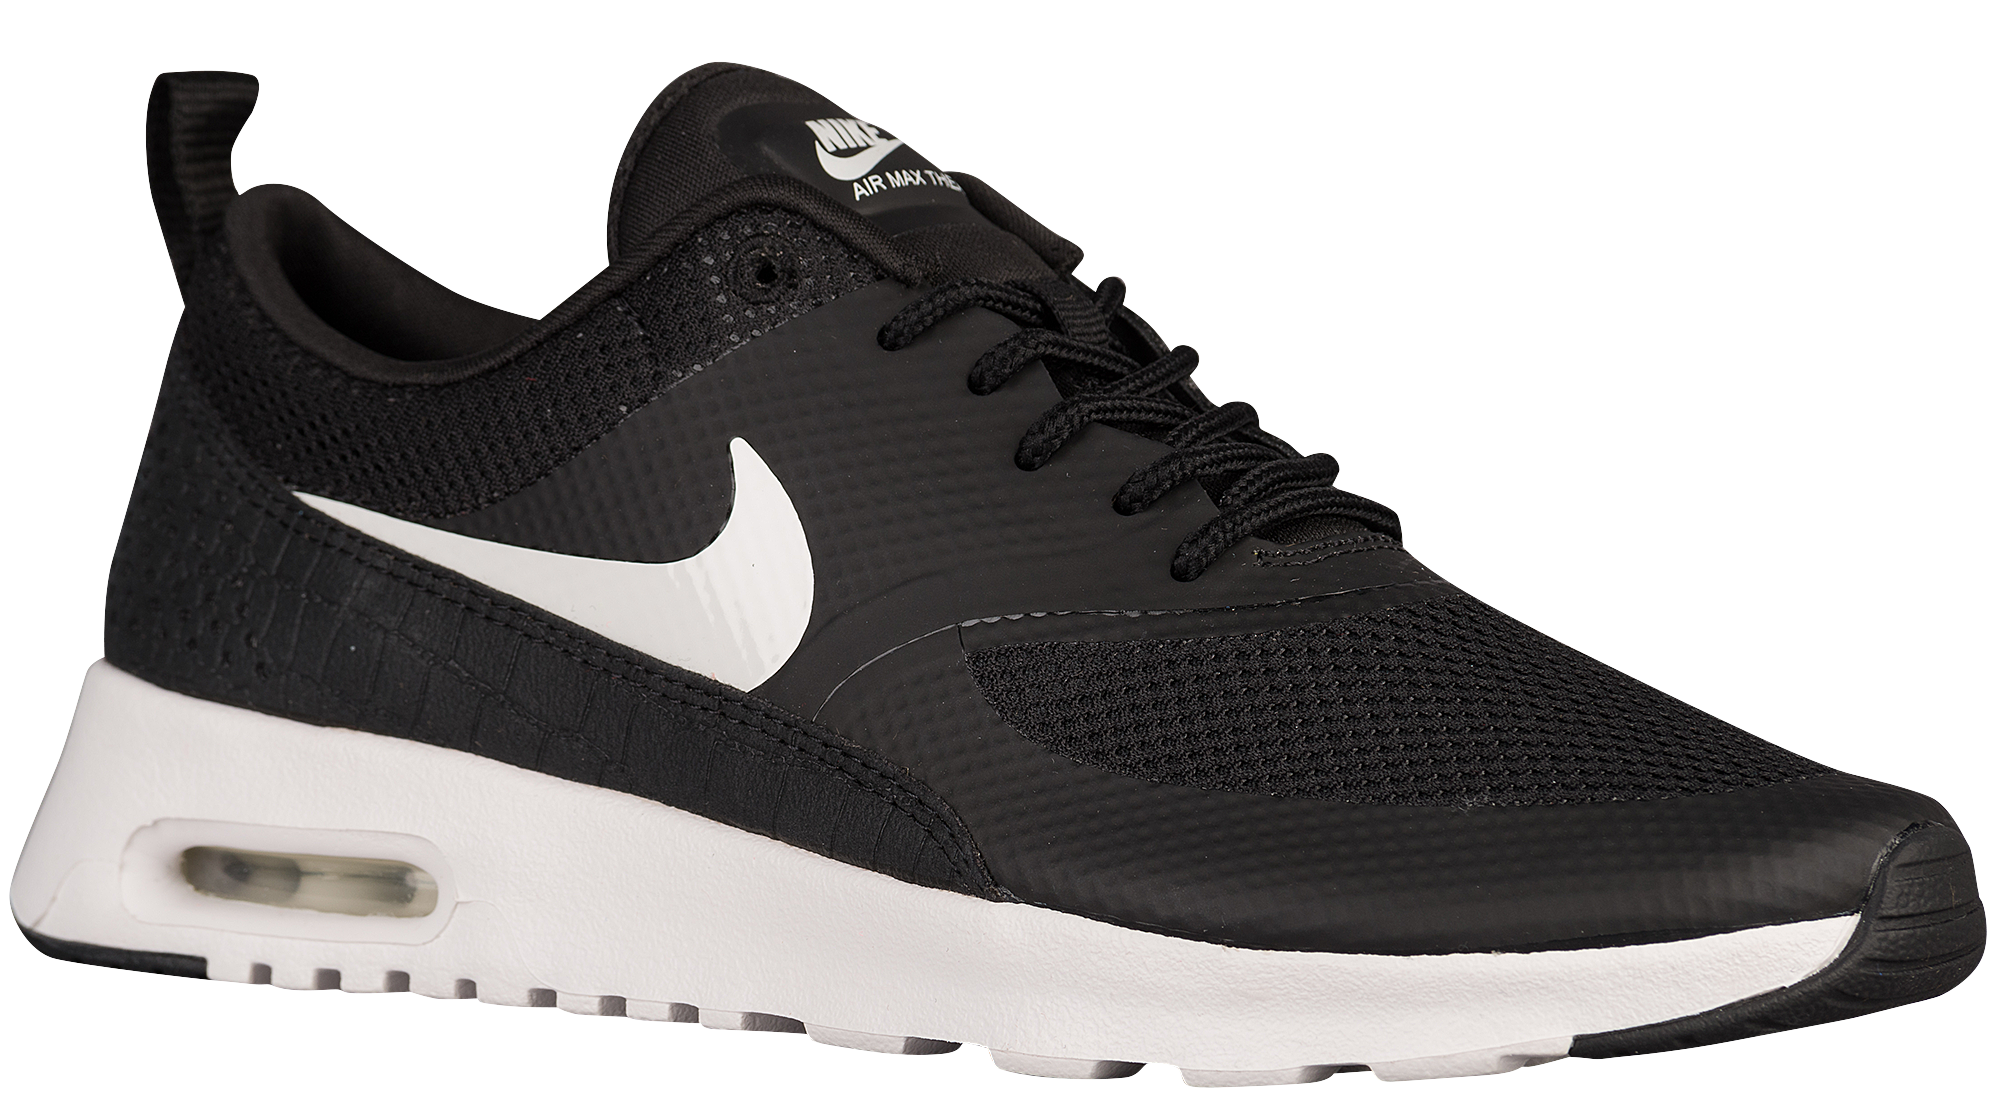 womens nike air max thea running shoes black and white clipart